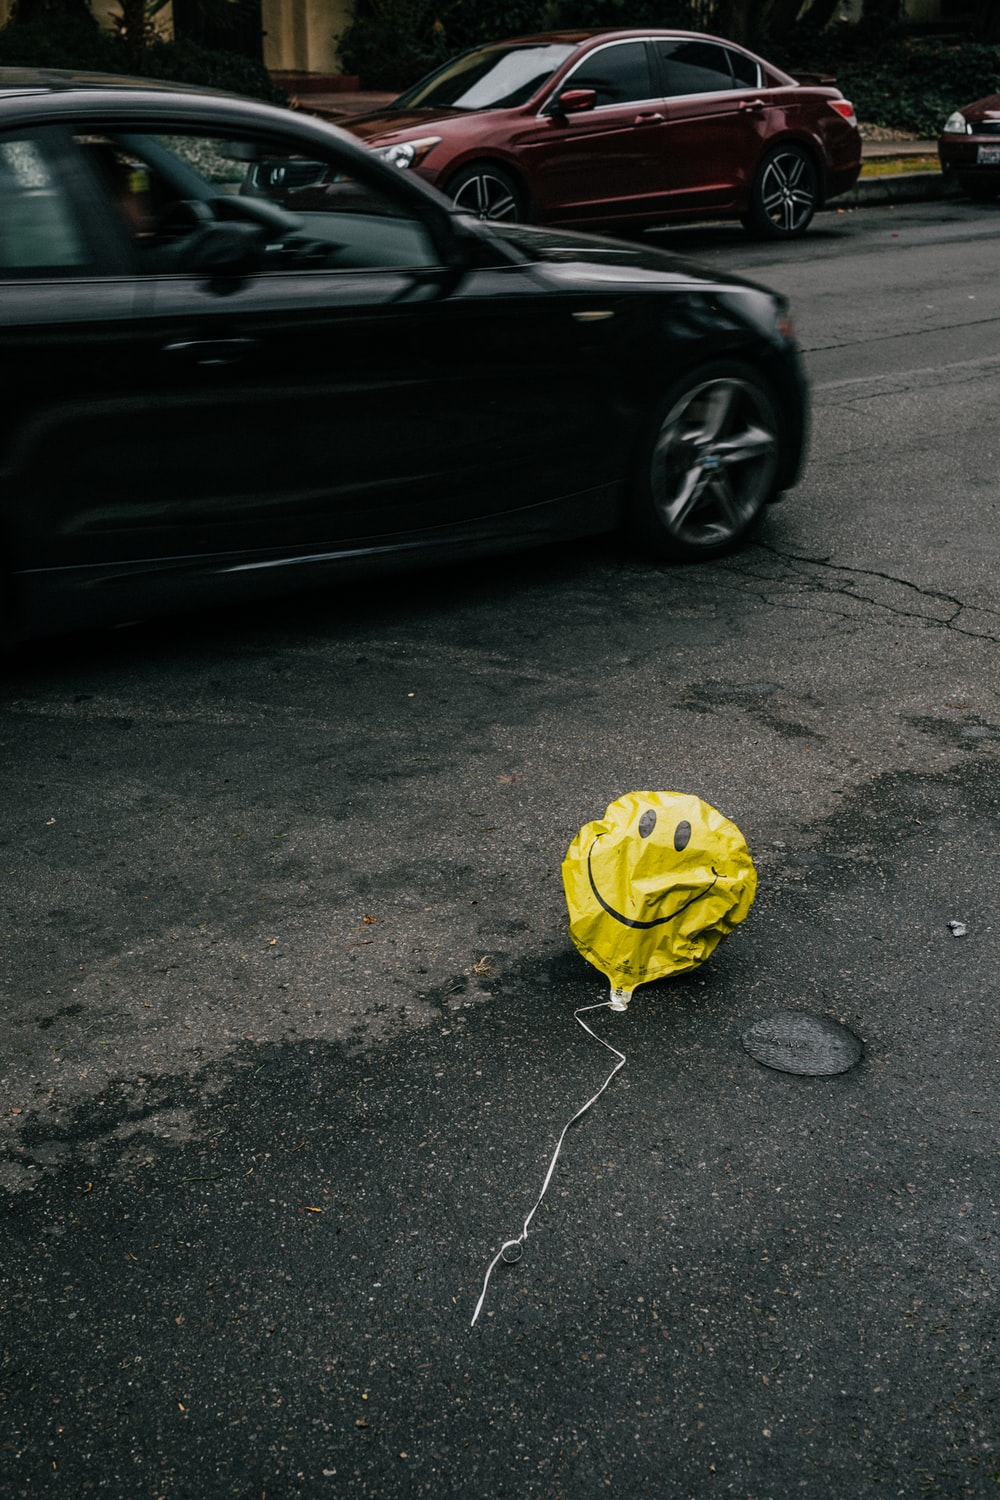 smiling emoji balloon beside black car during daytime